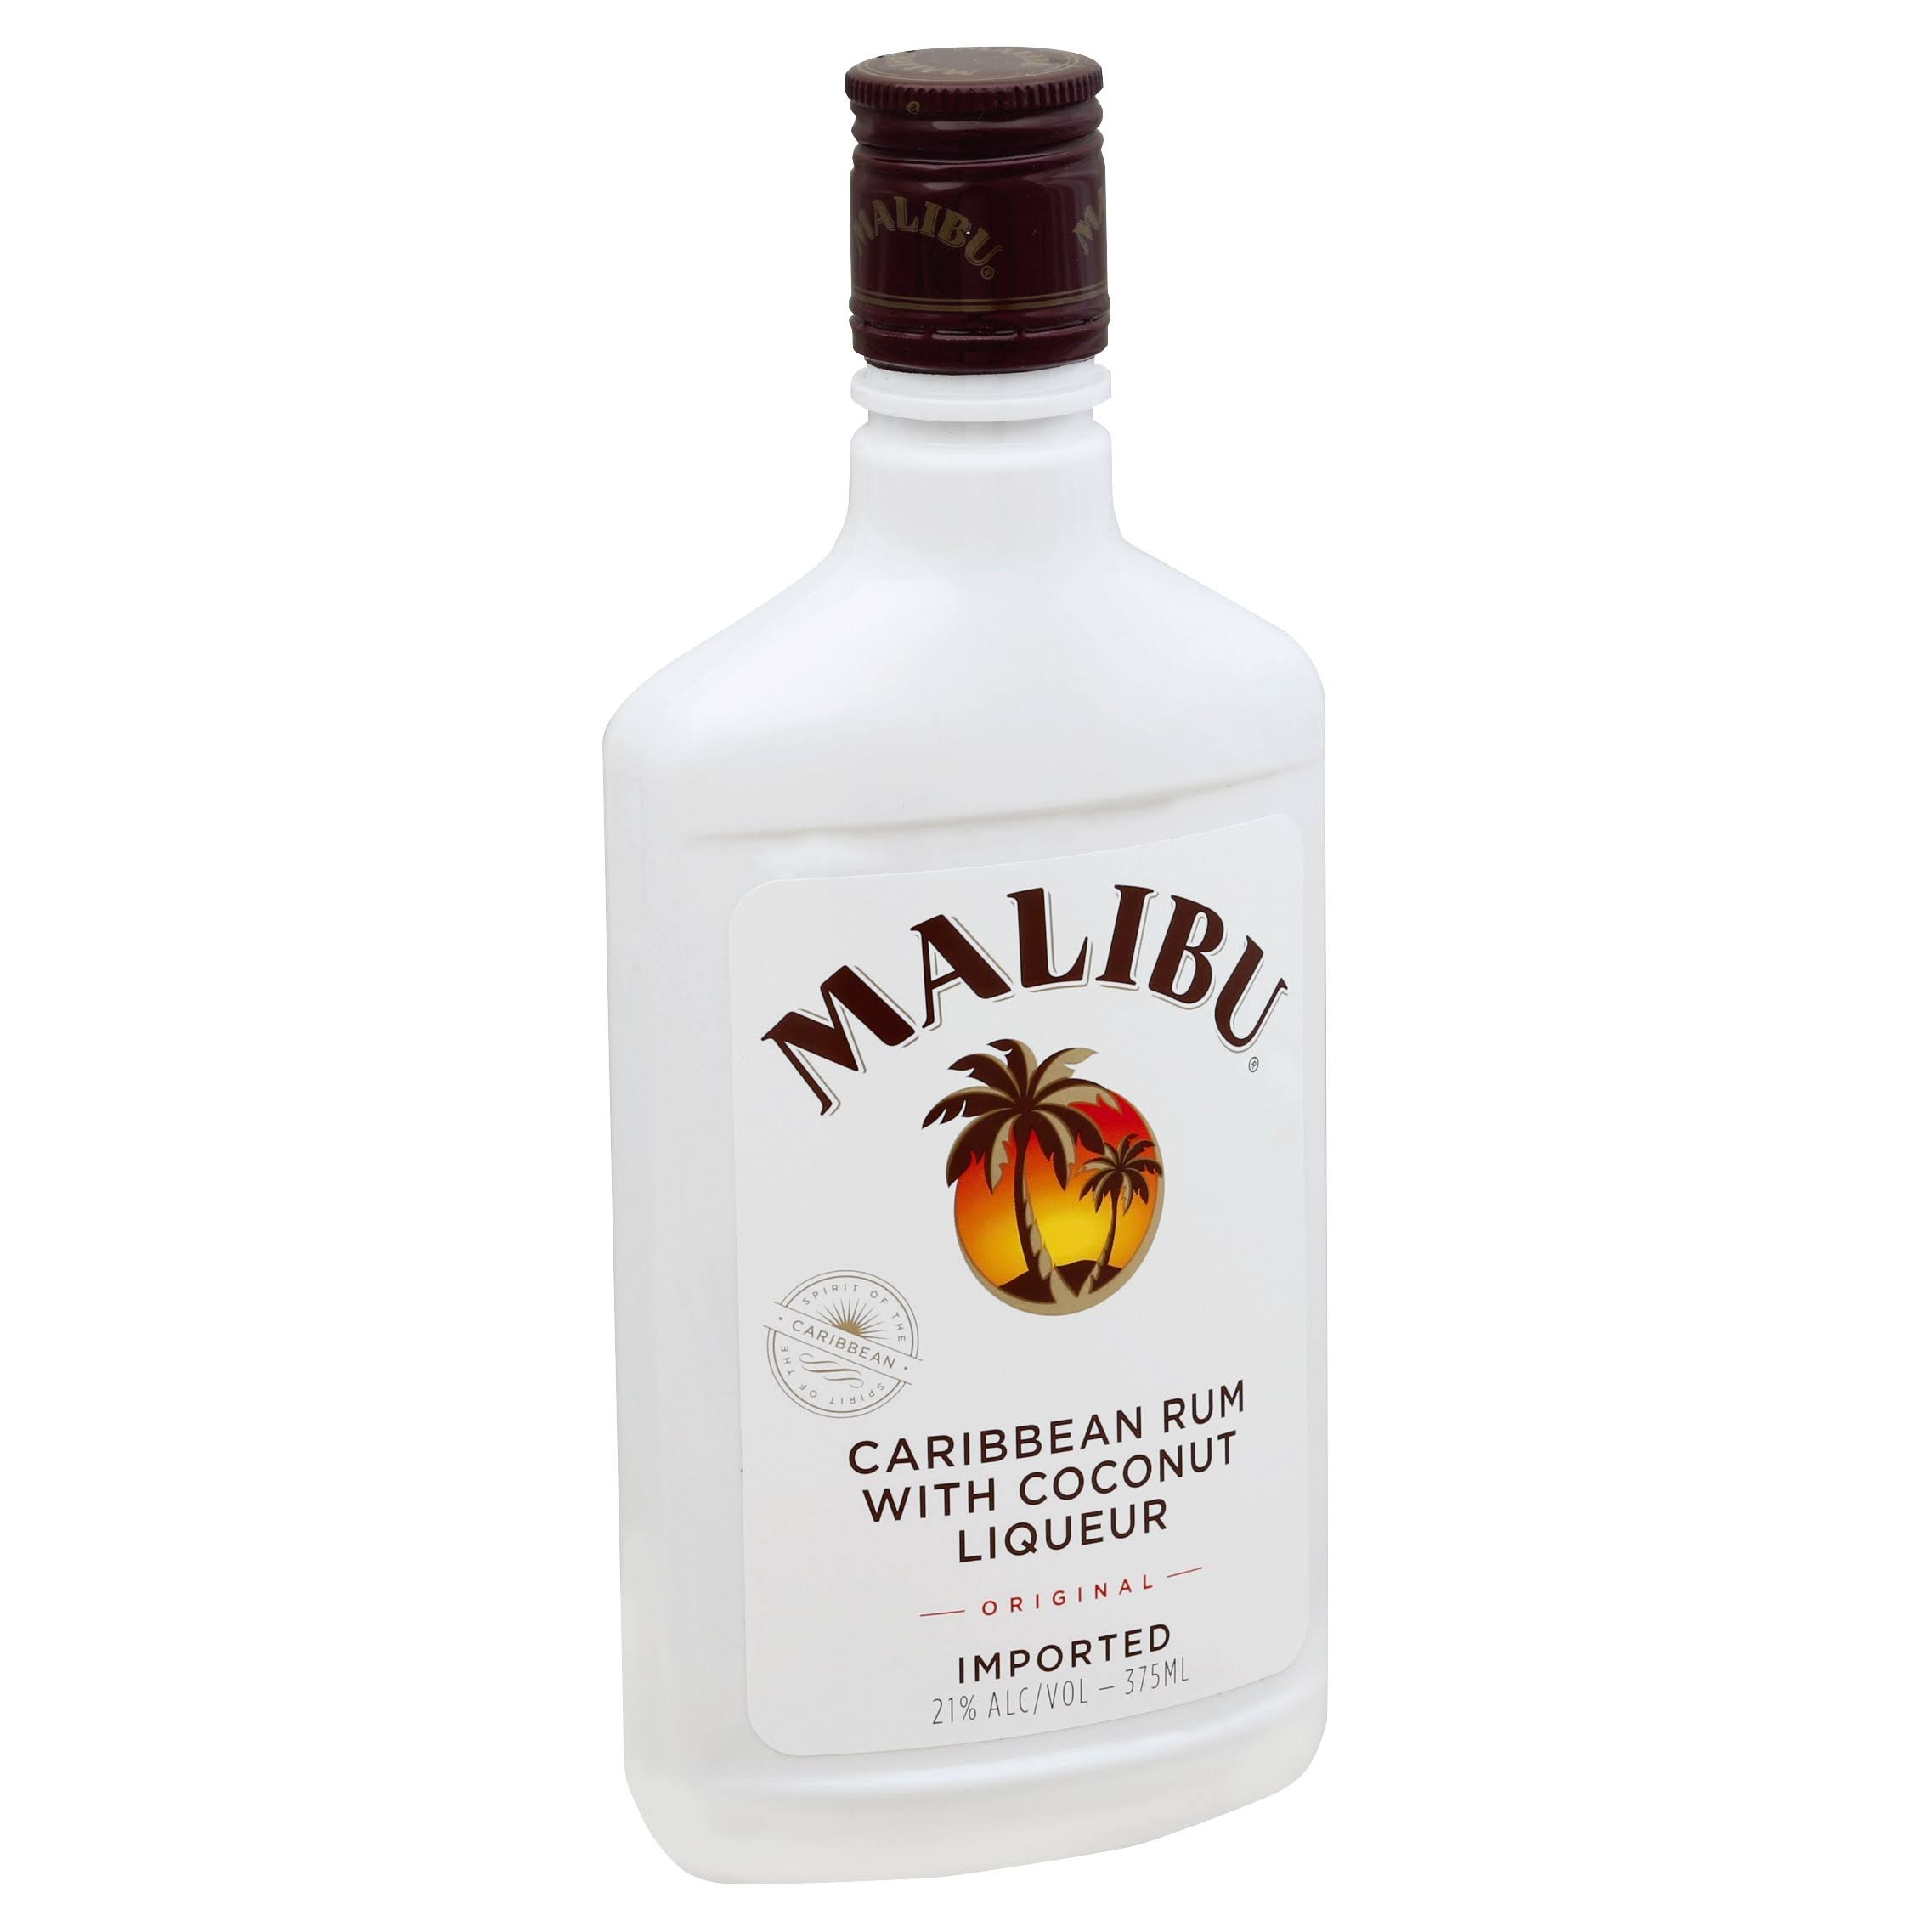 Malibu Original Coconut Rum - 375 ml bottle